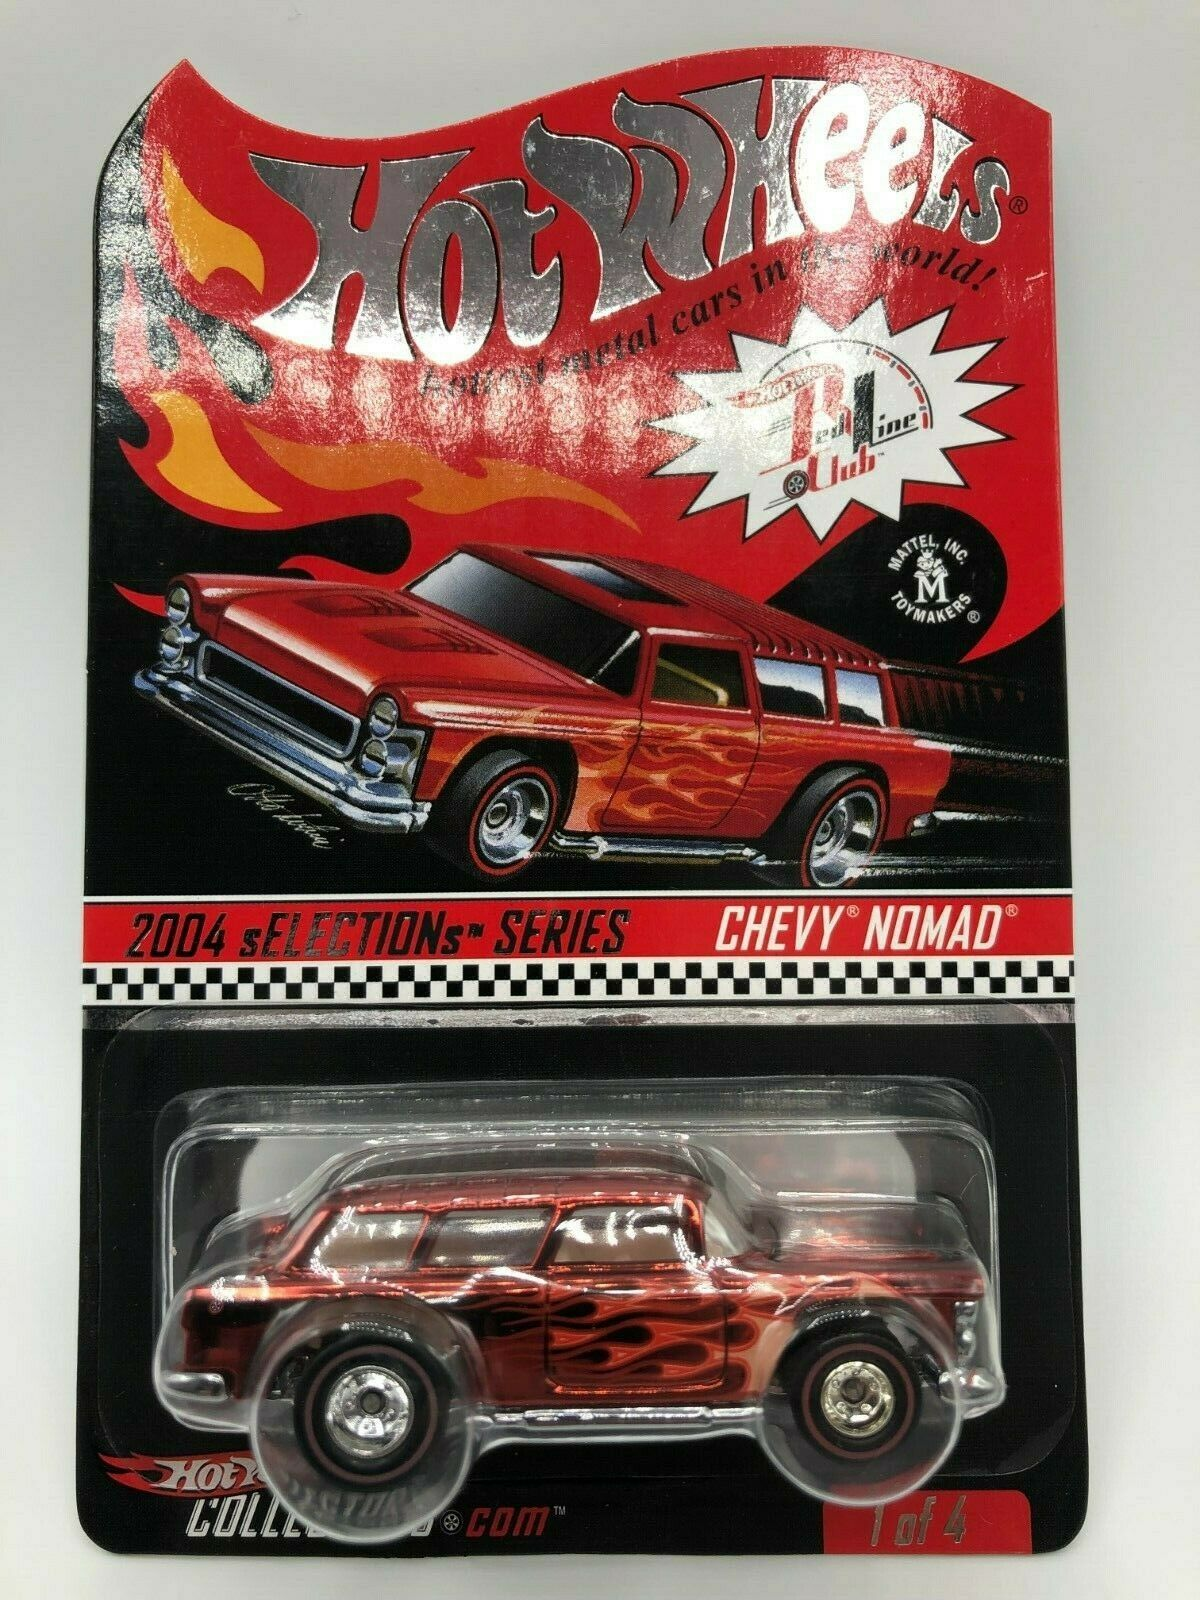 Hot Wheels 2004 sELECTIONs Series Chevy Nomad MIBP Predecto